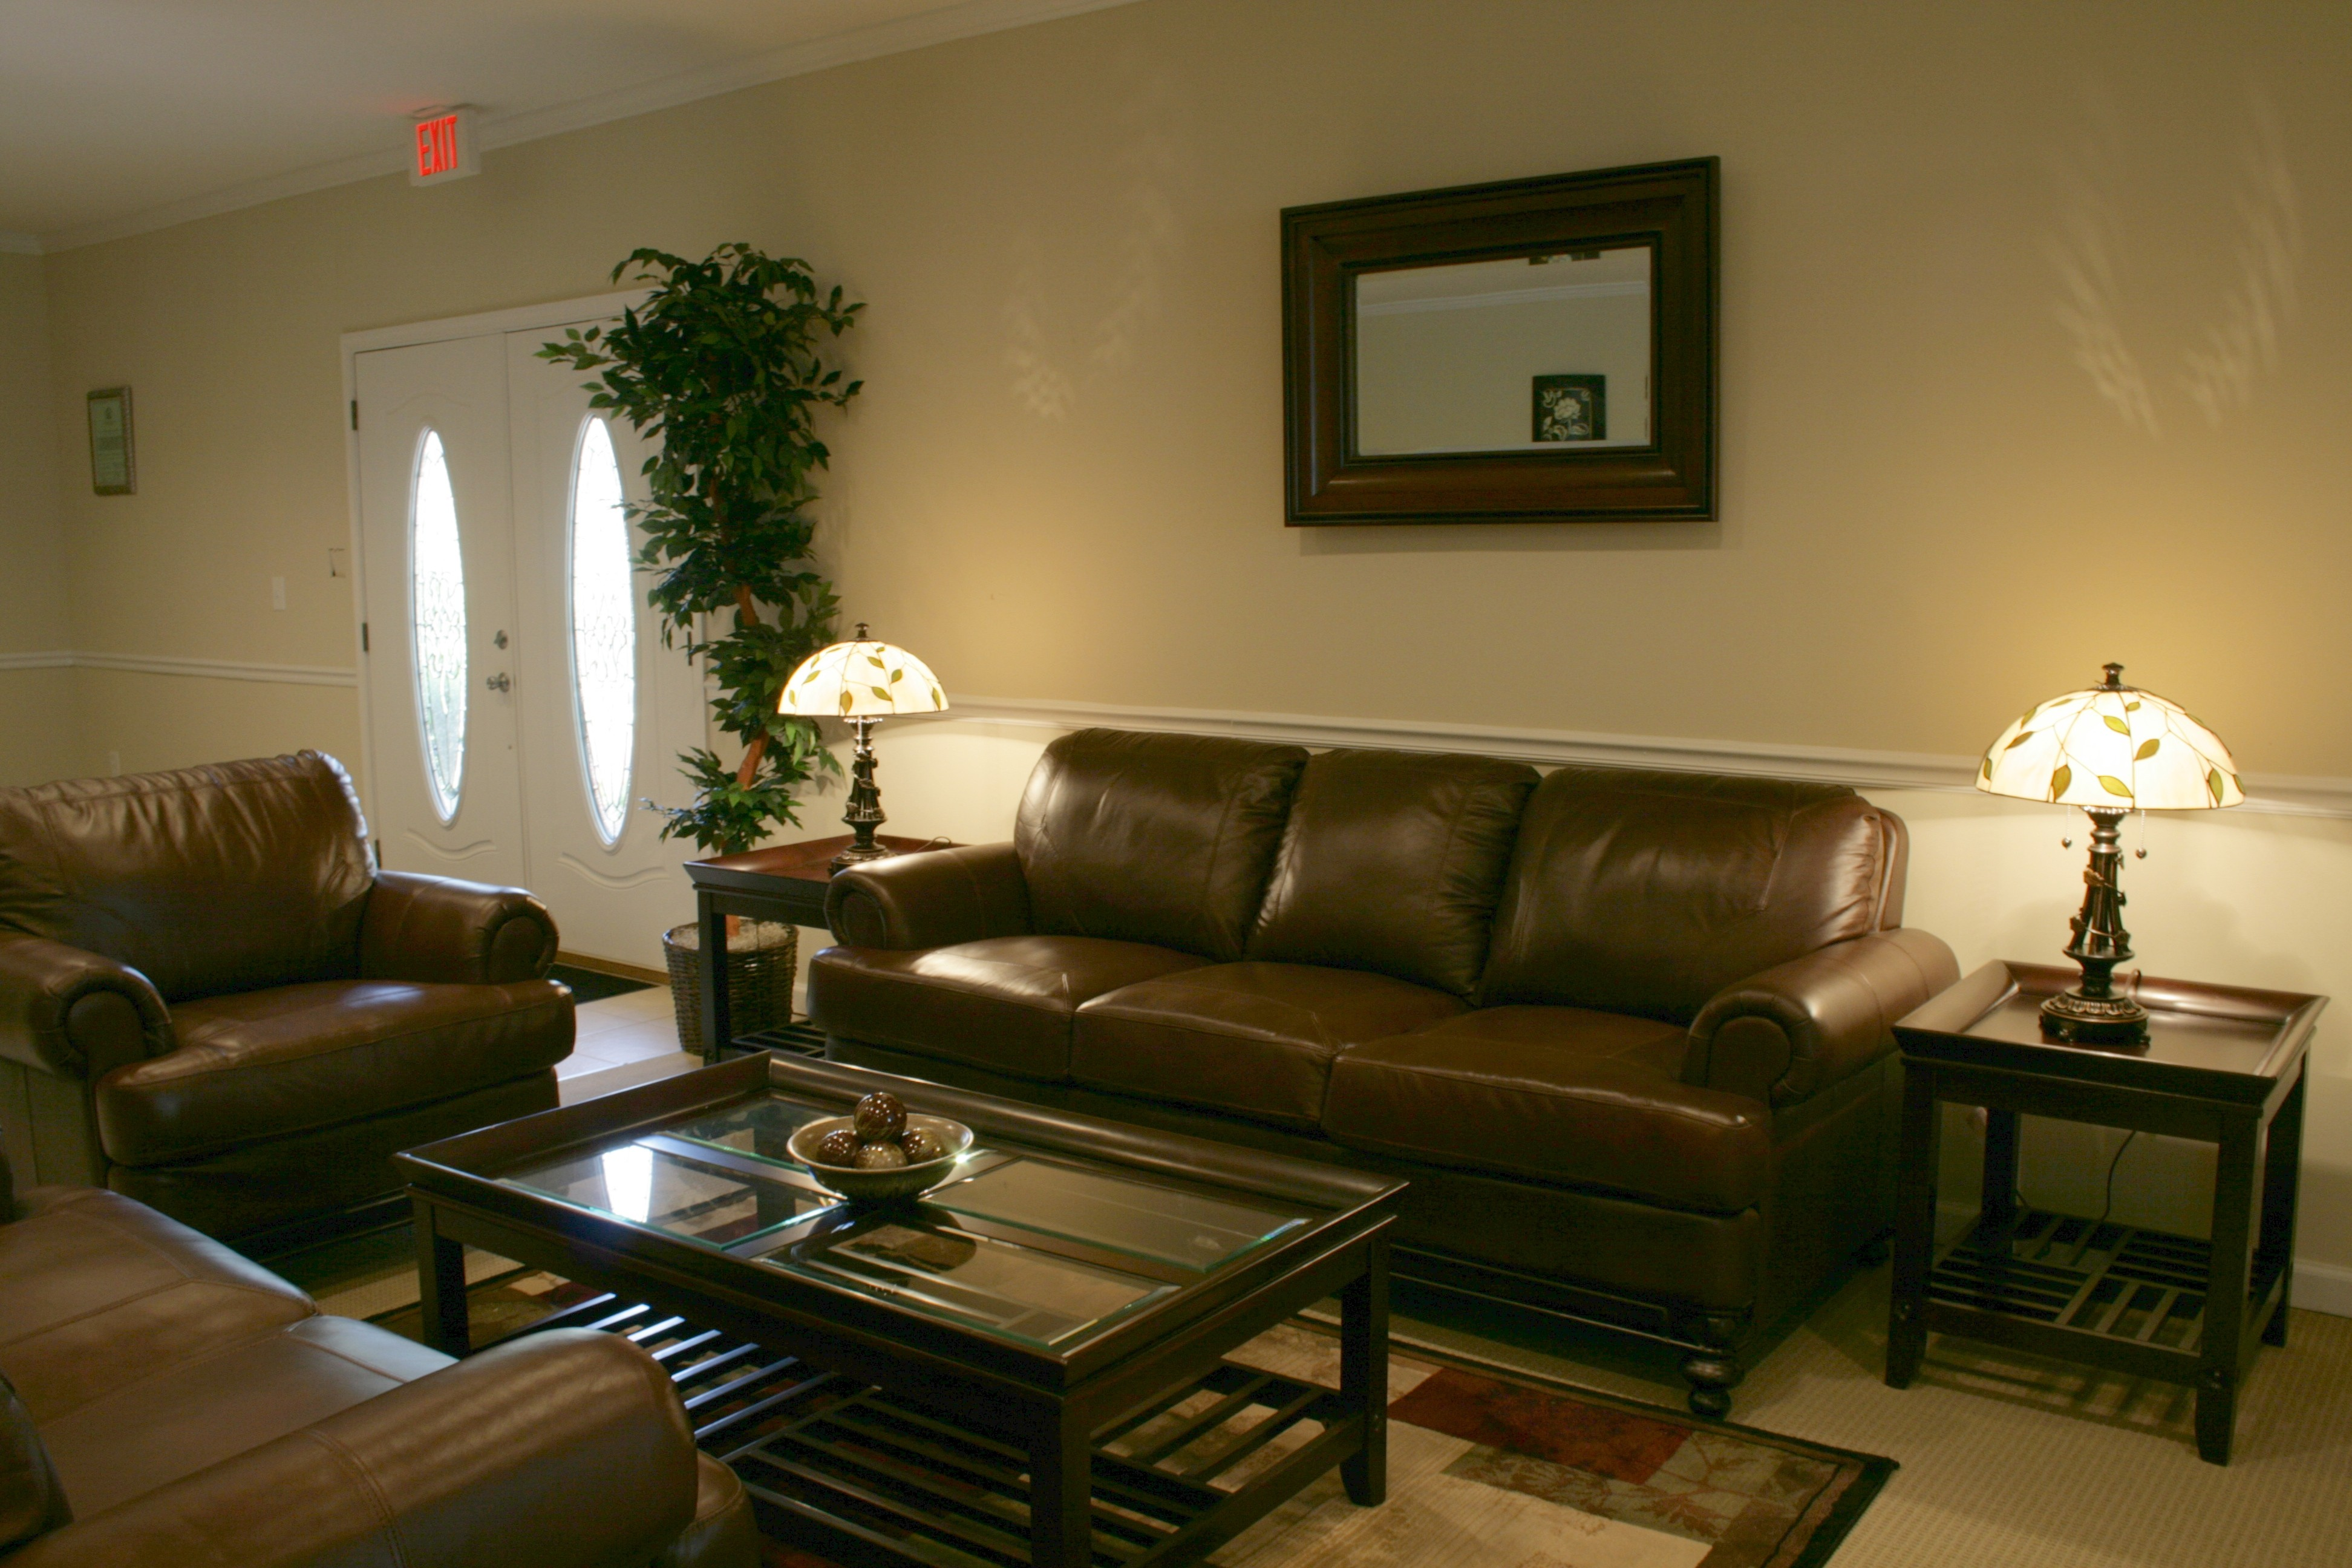 top sectional recliner sofa ideas-Amazing Sectional Recliner sofa Architecture